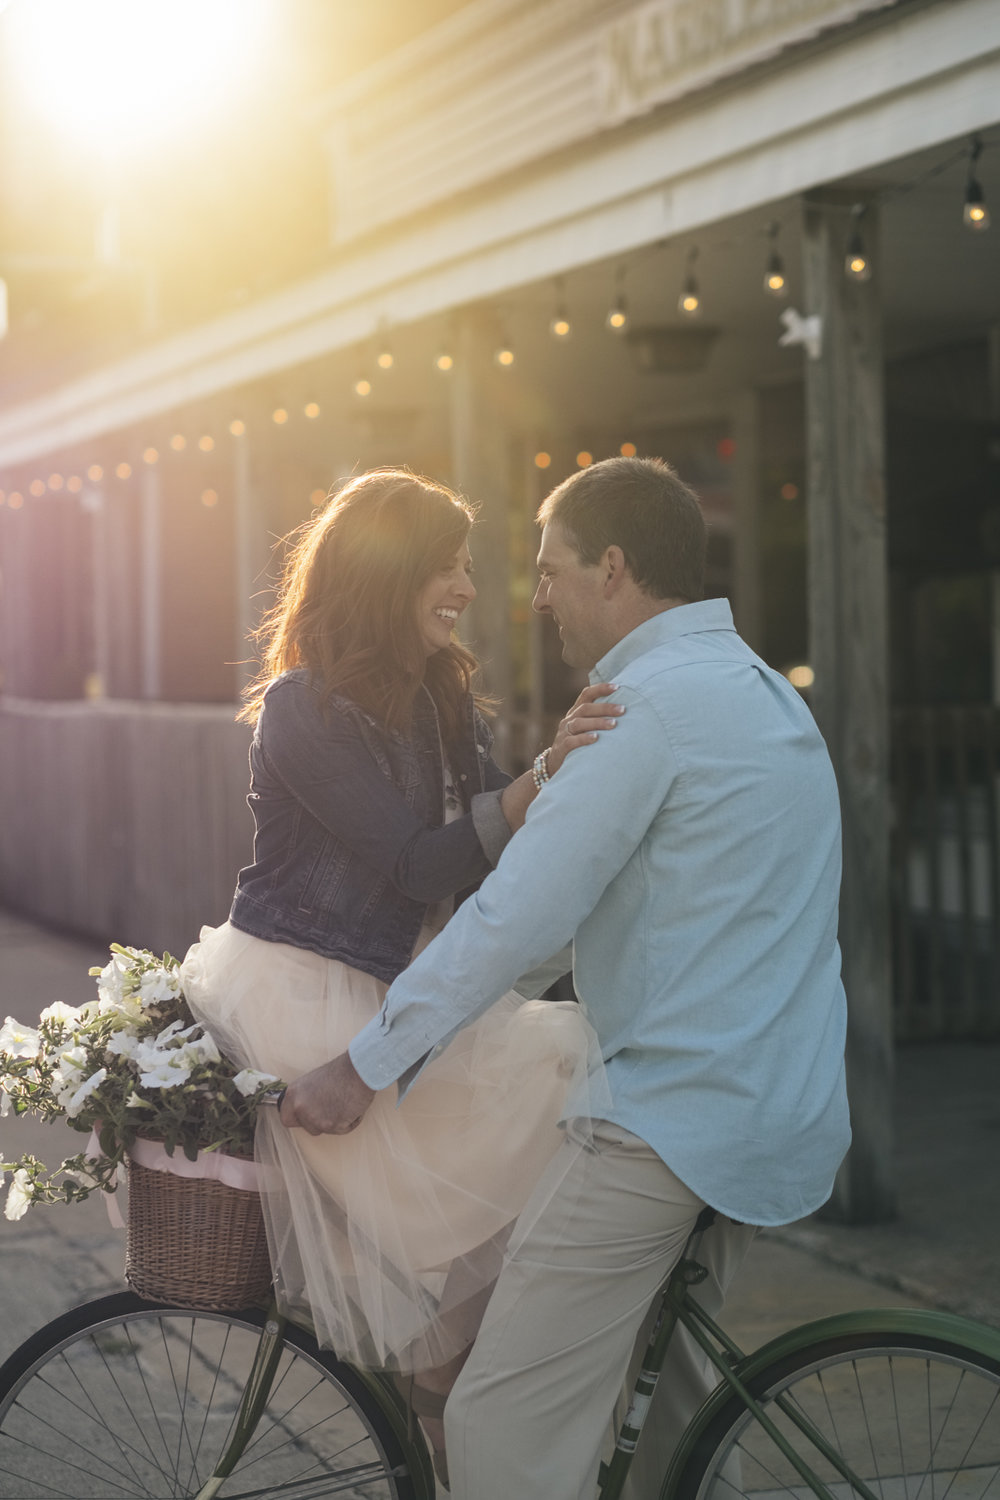 Sunset engagement session photography in Marblehead, Ohio.